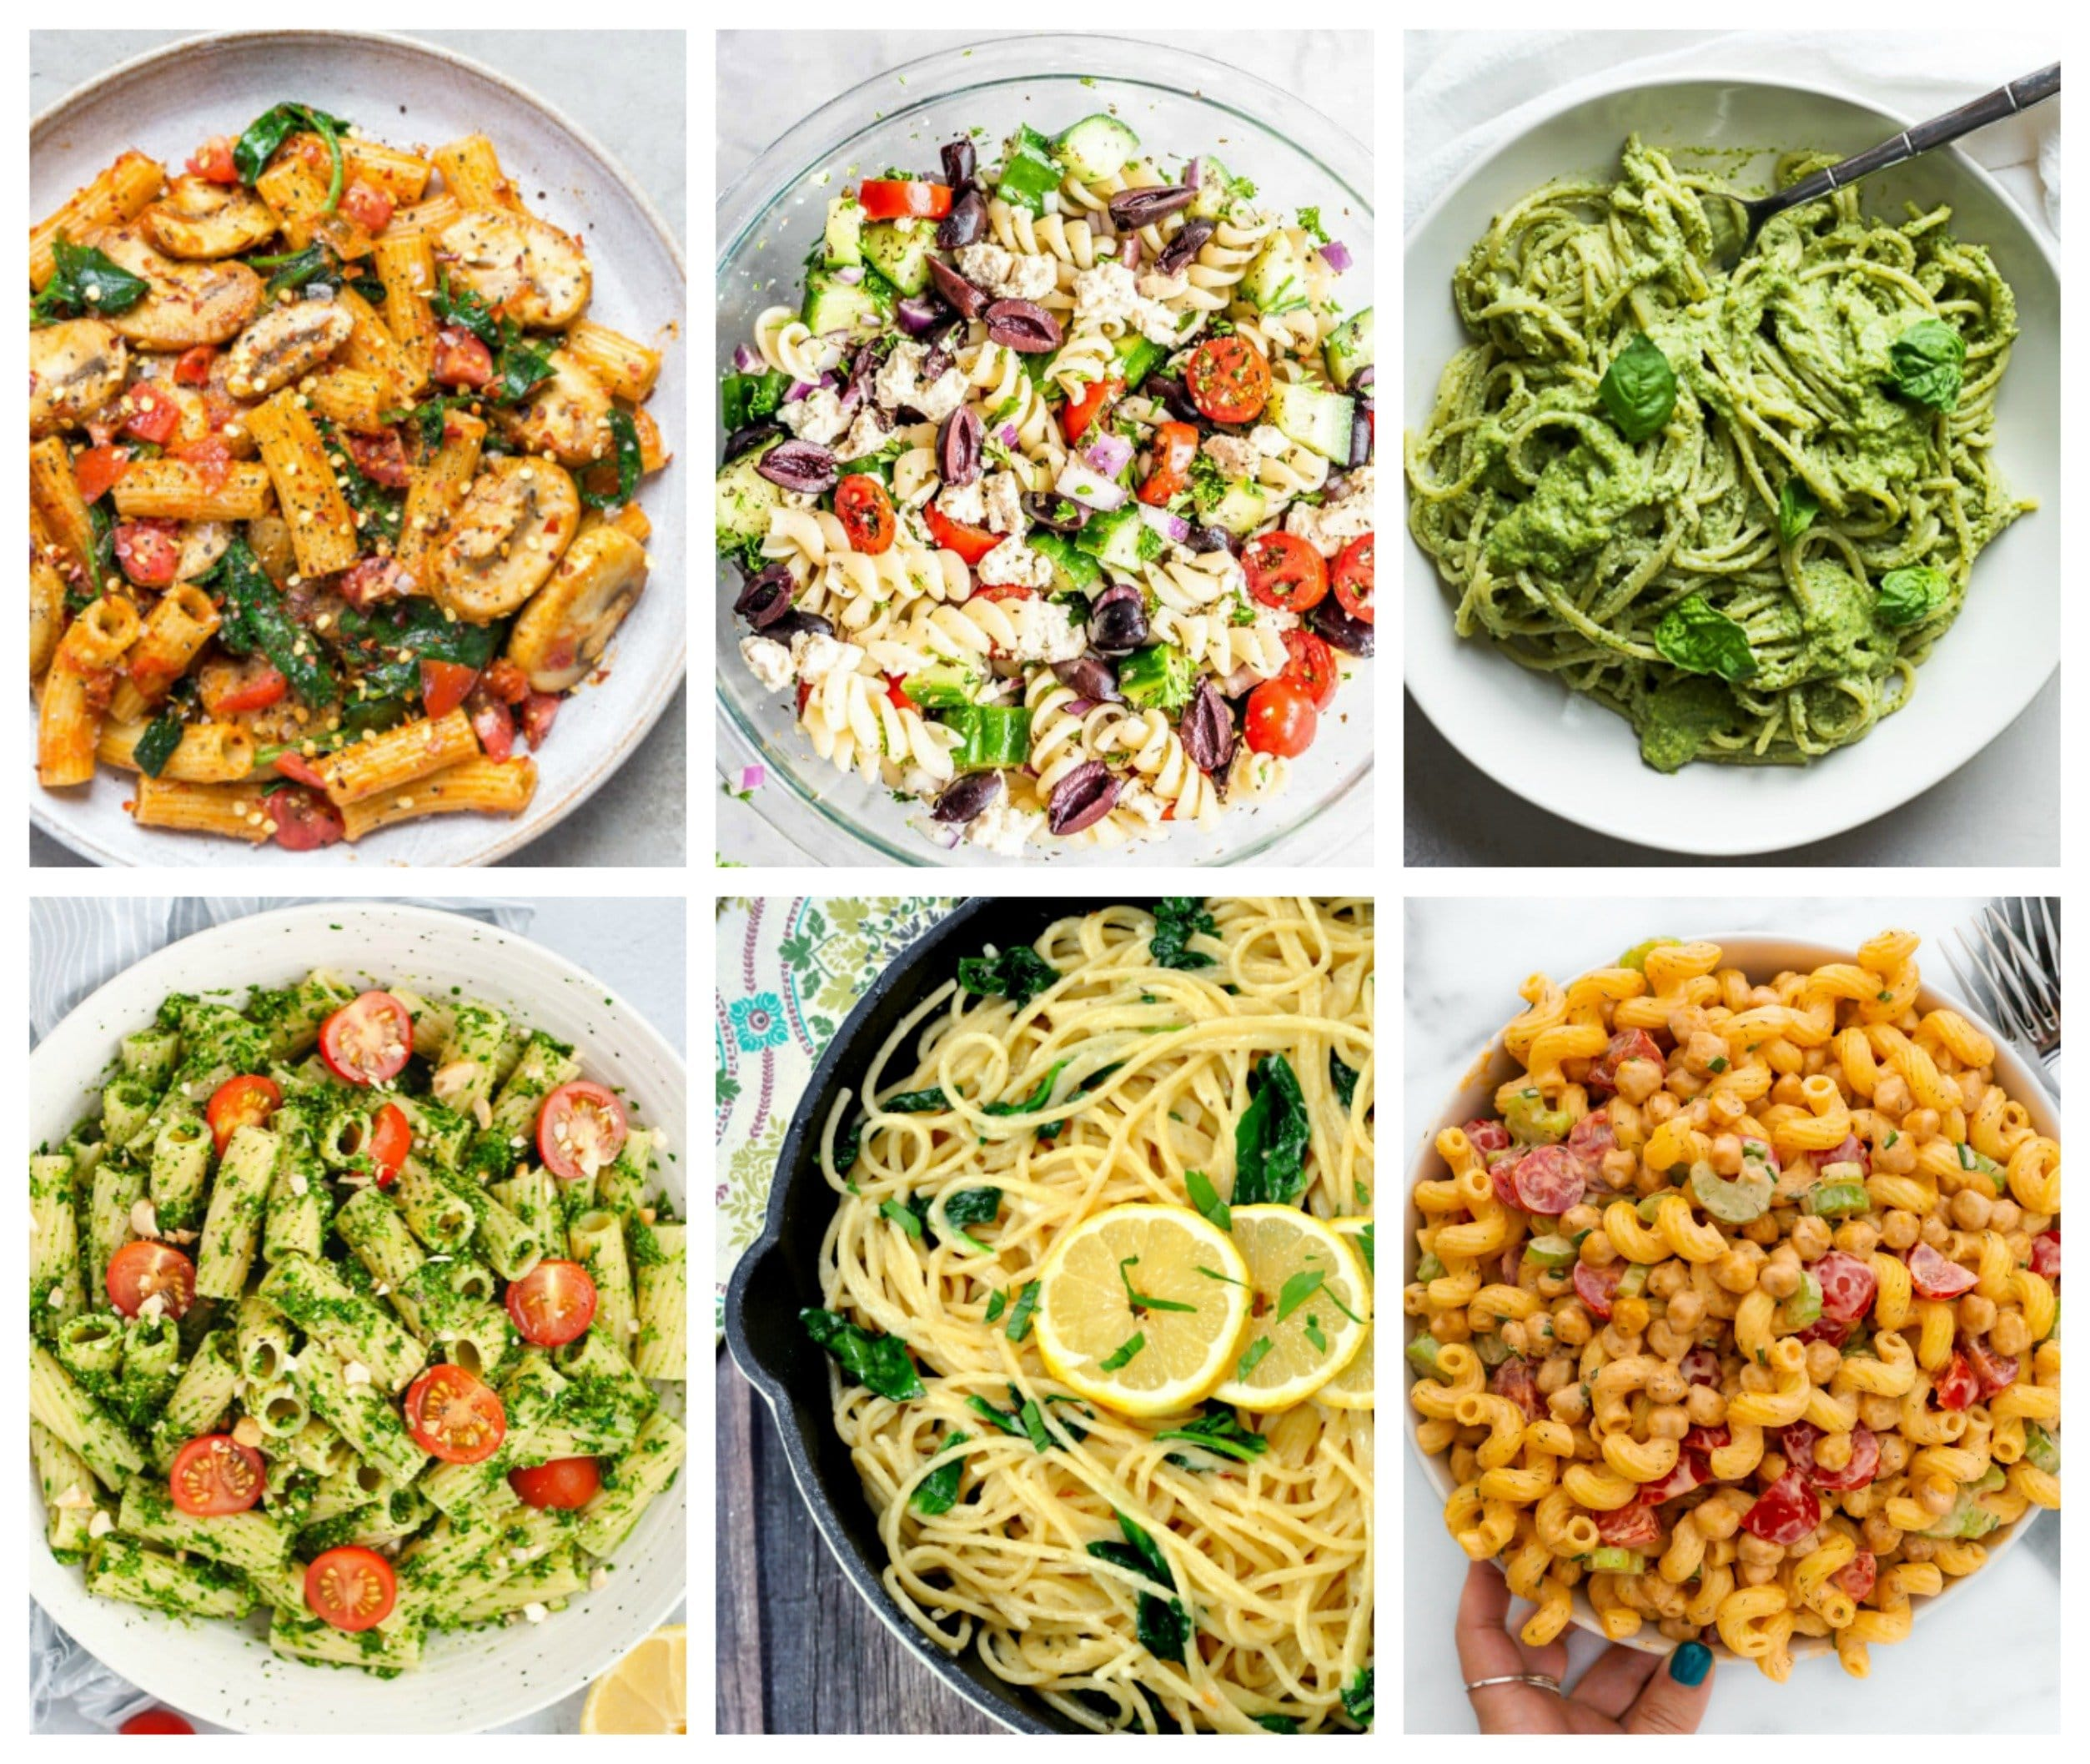 25 Tempting Vegan Pastas We Can't Live Without!